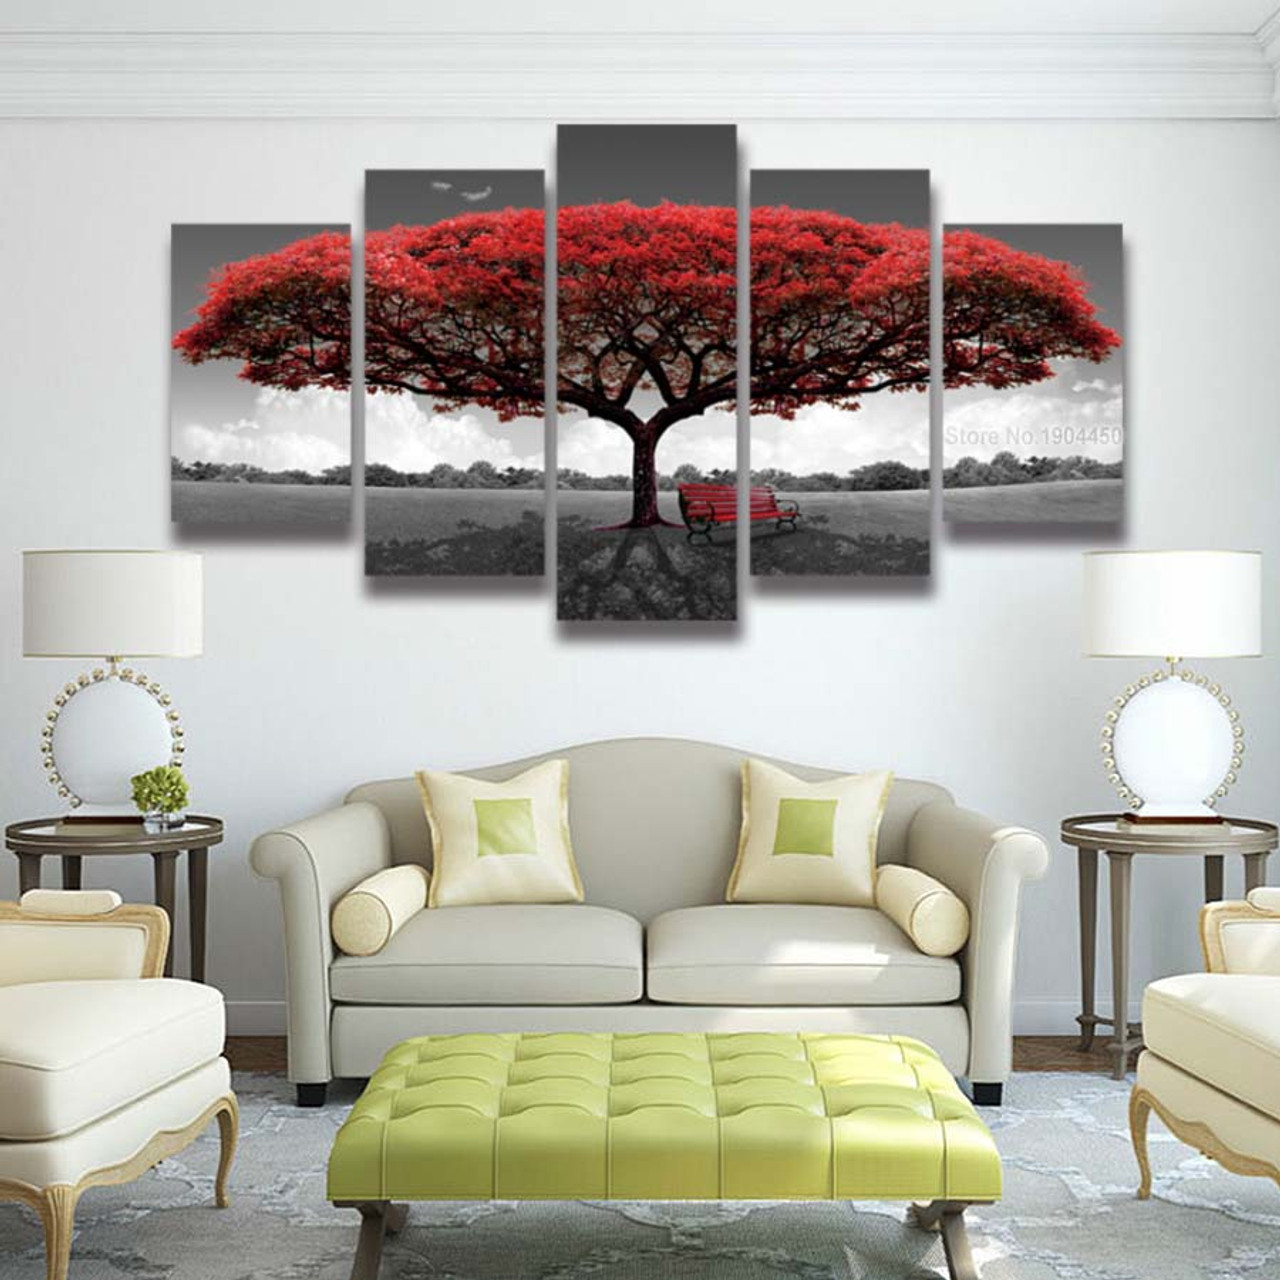 5 panel Printed red tree art scenery landscape modular picture large ...